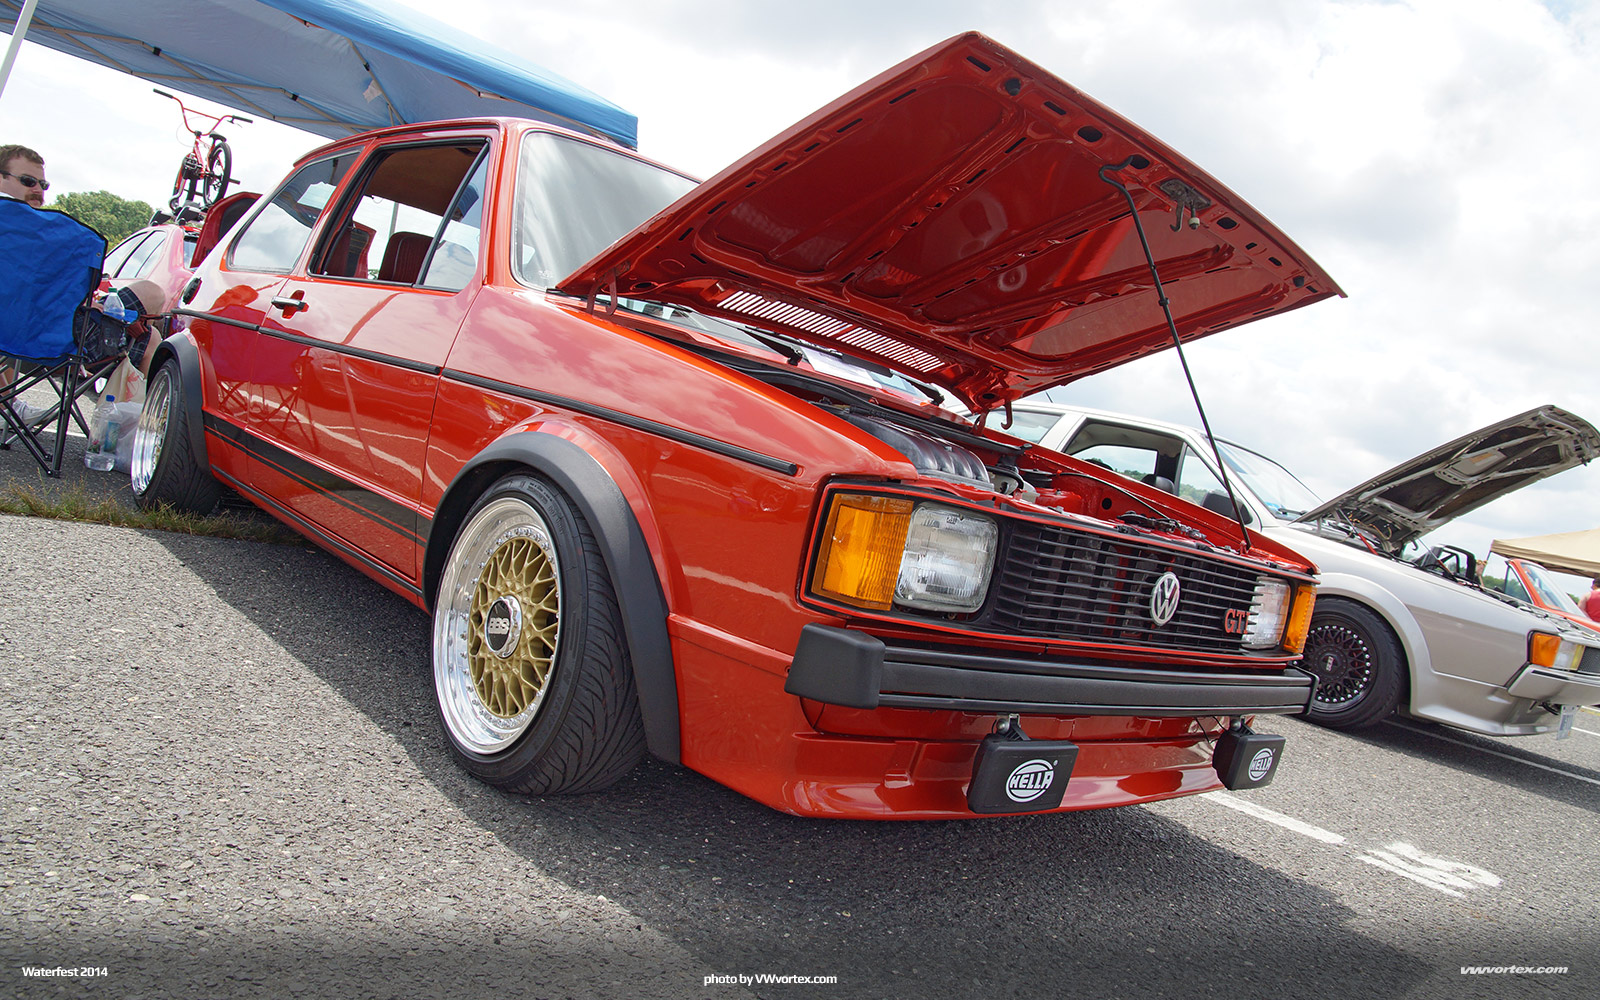 2014-waterfest-vw-audi-1407